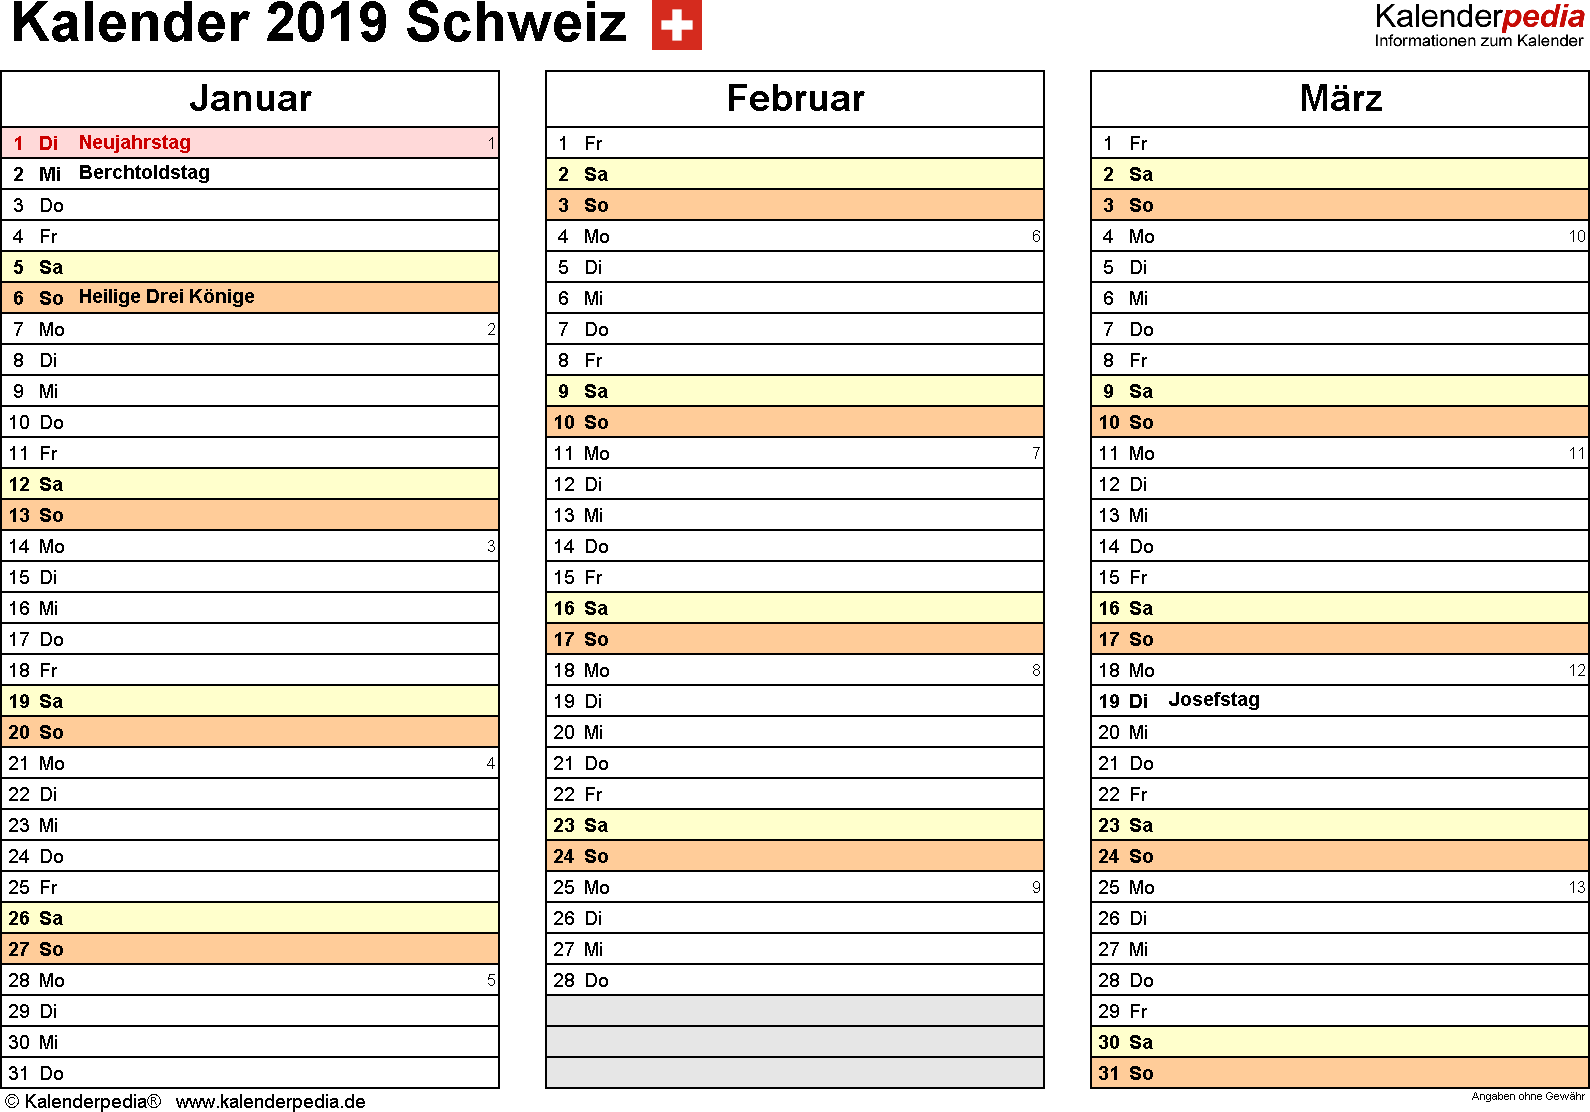 kalender 2019 schweiz in excel zum ausdrucken. Black Bedroom Furniture Sets. Home Design Ideas